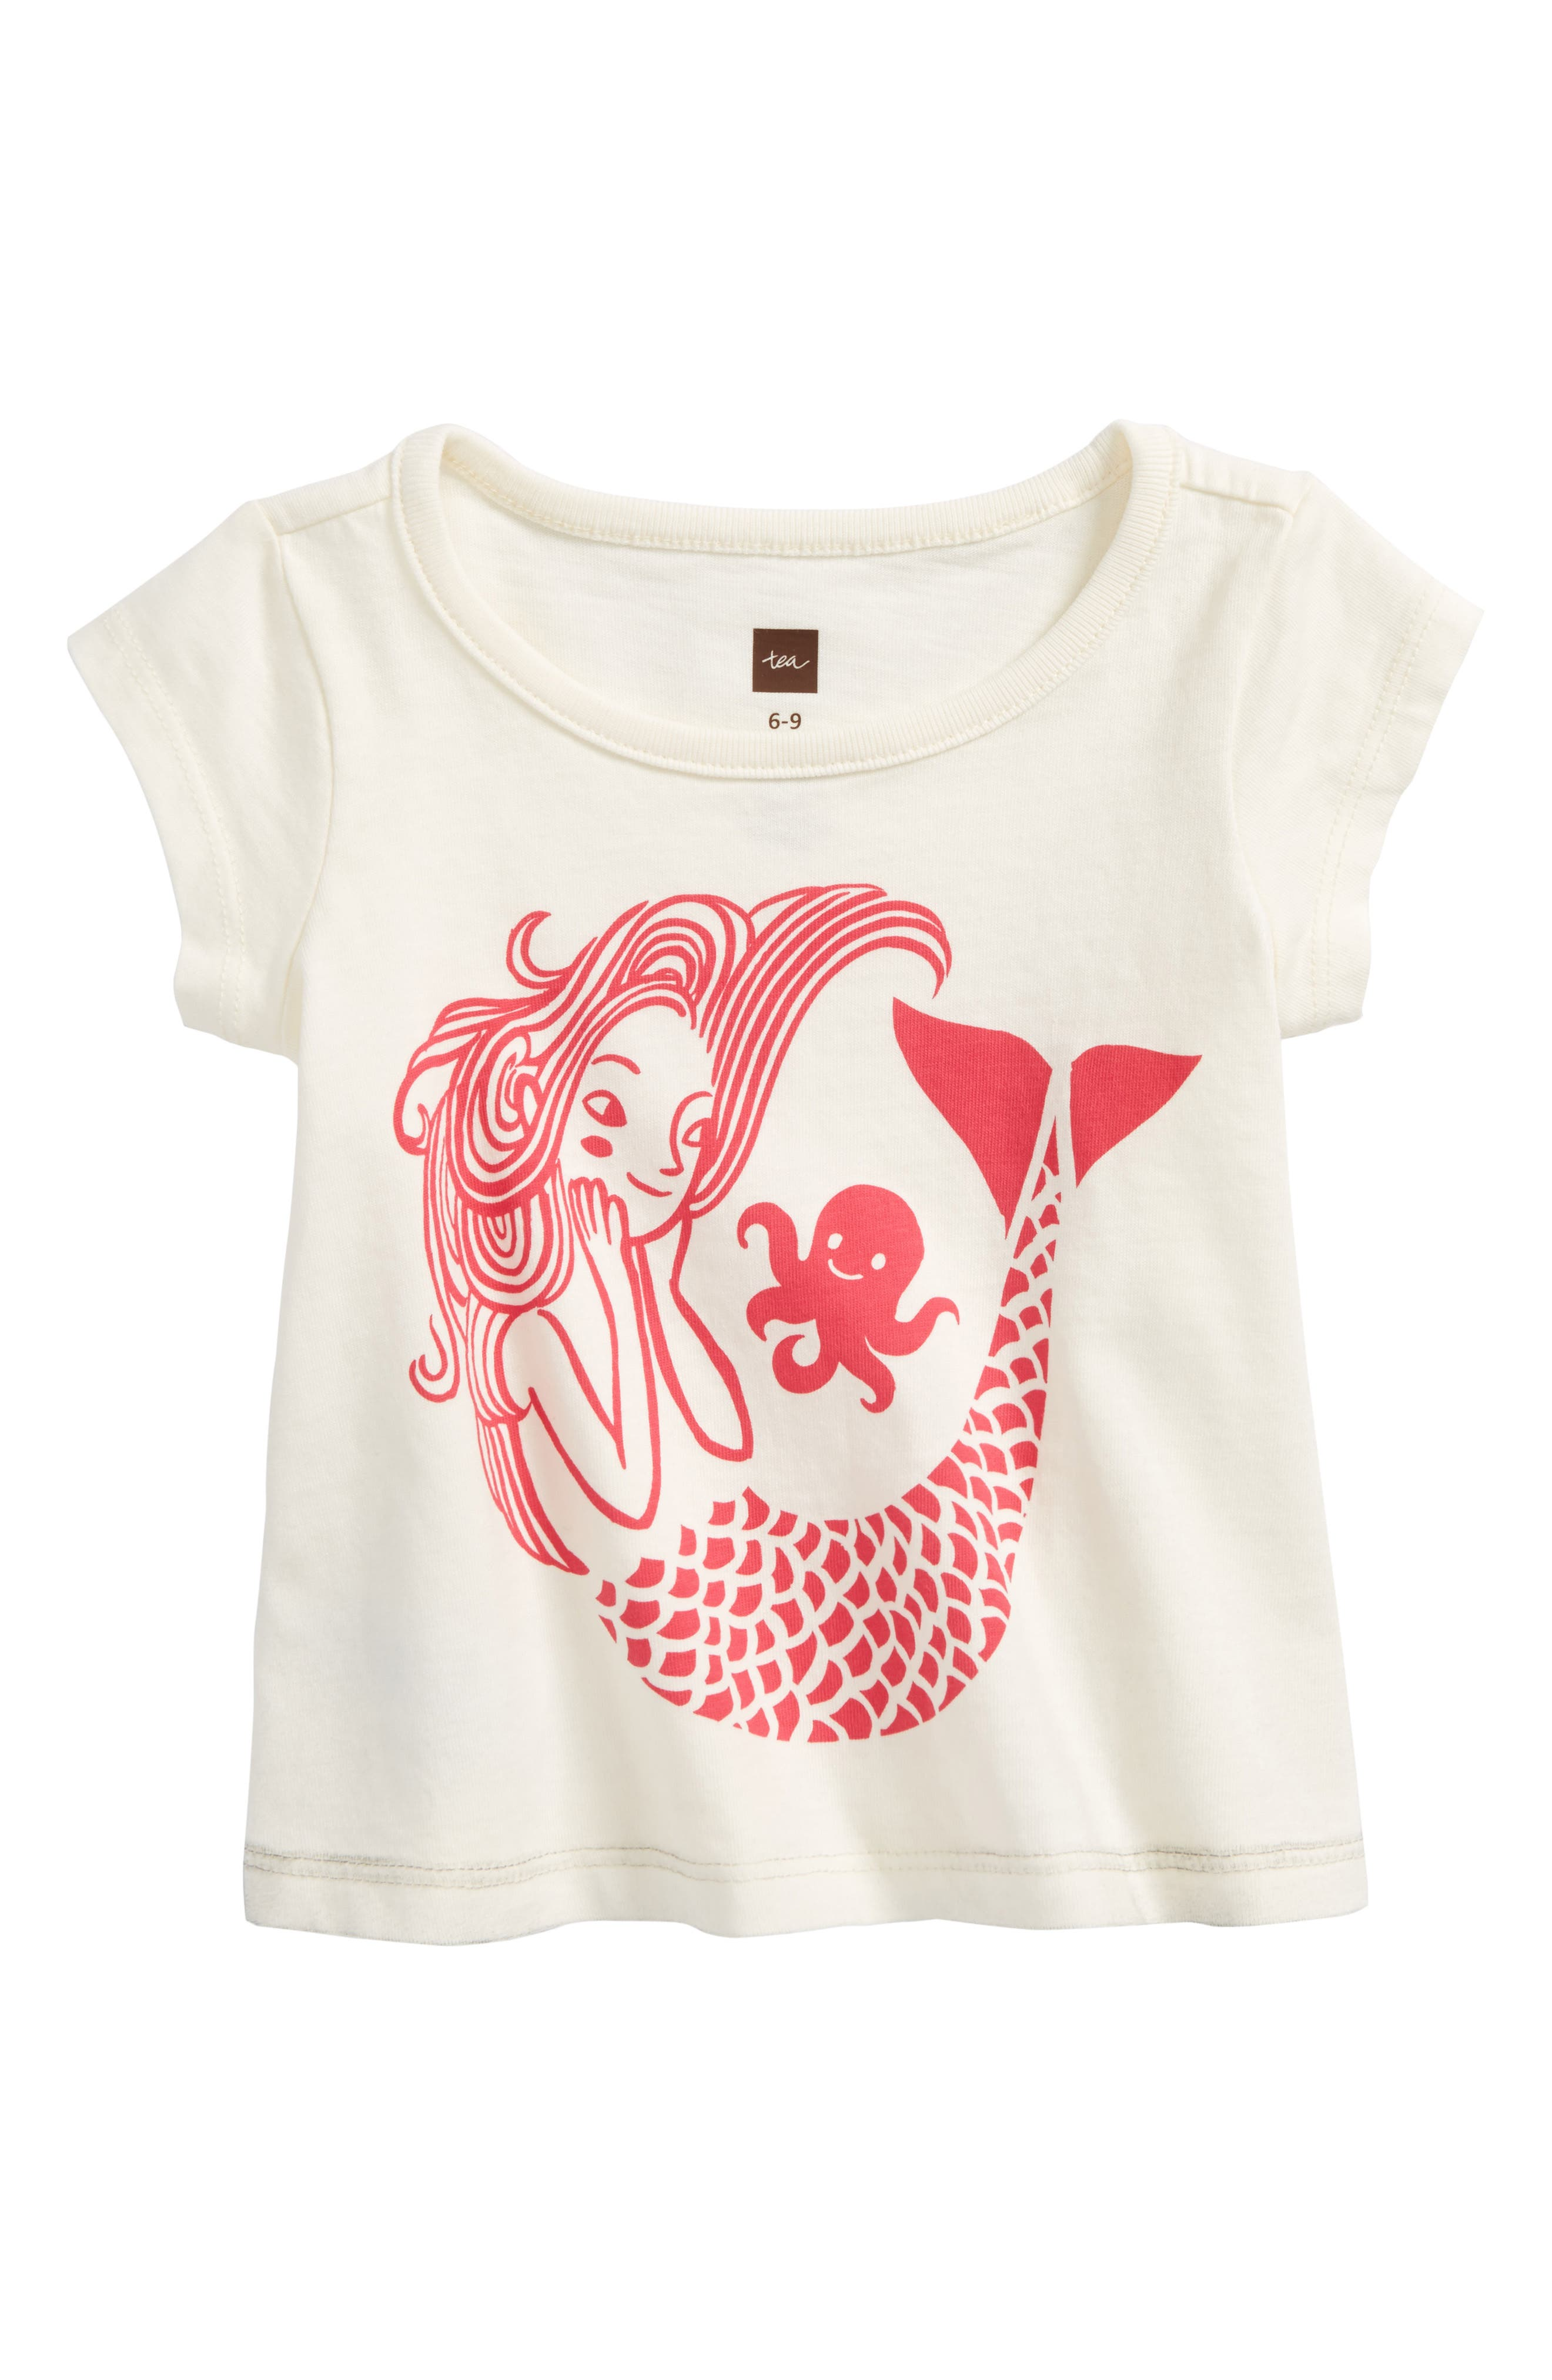 Mermaid Graphic Tee,                         Main,                         color, 103